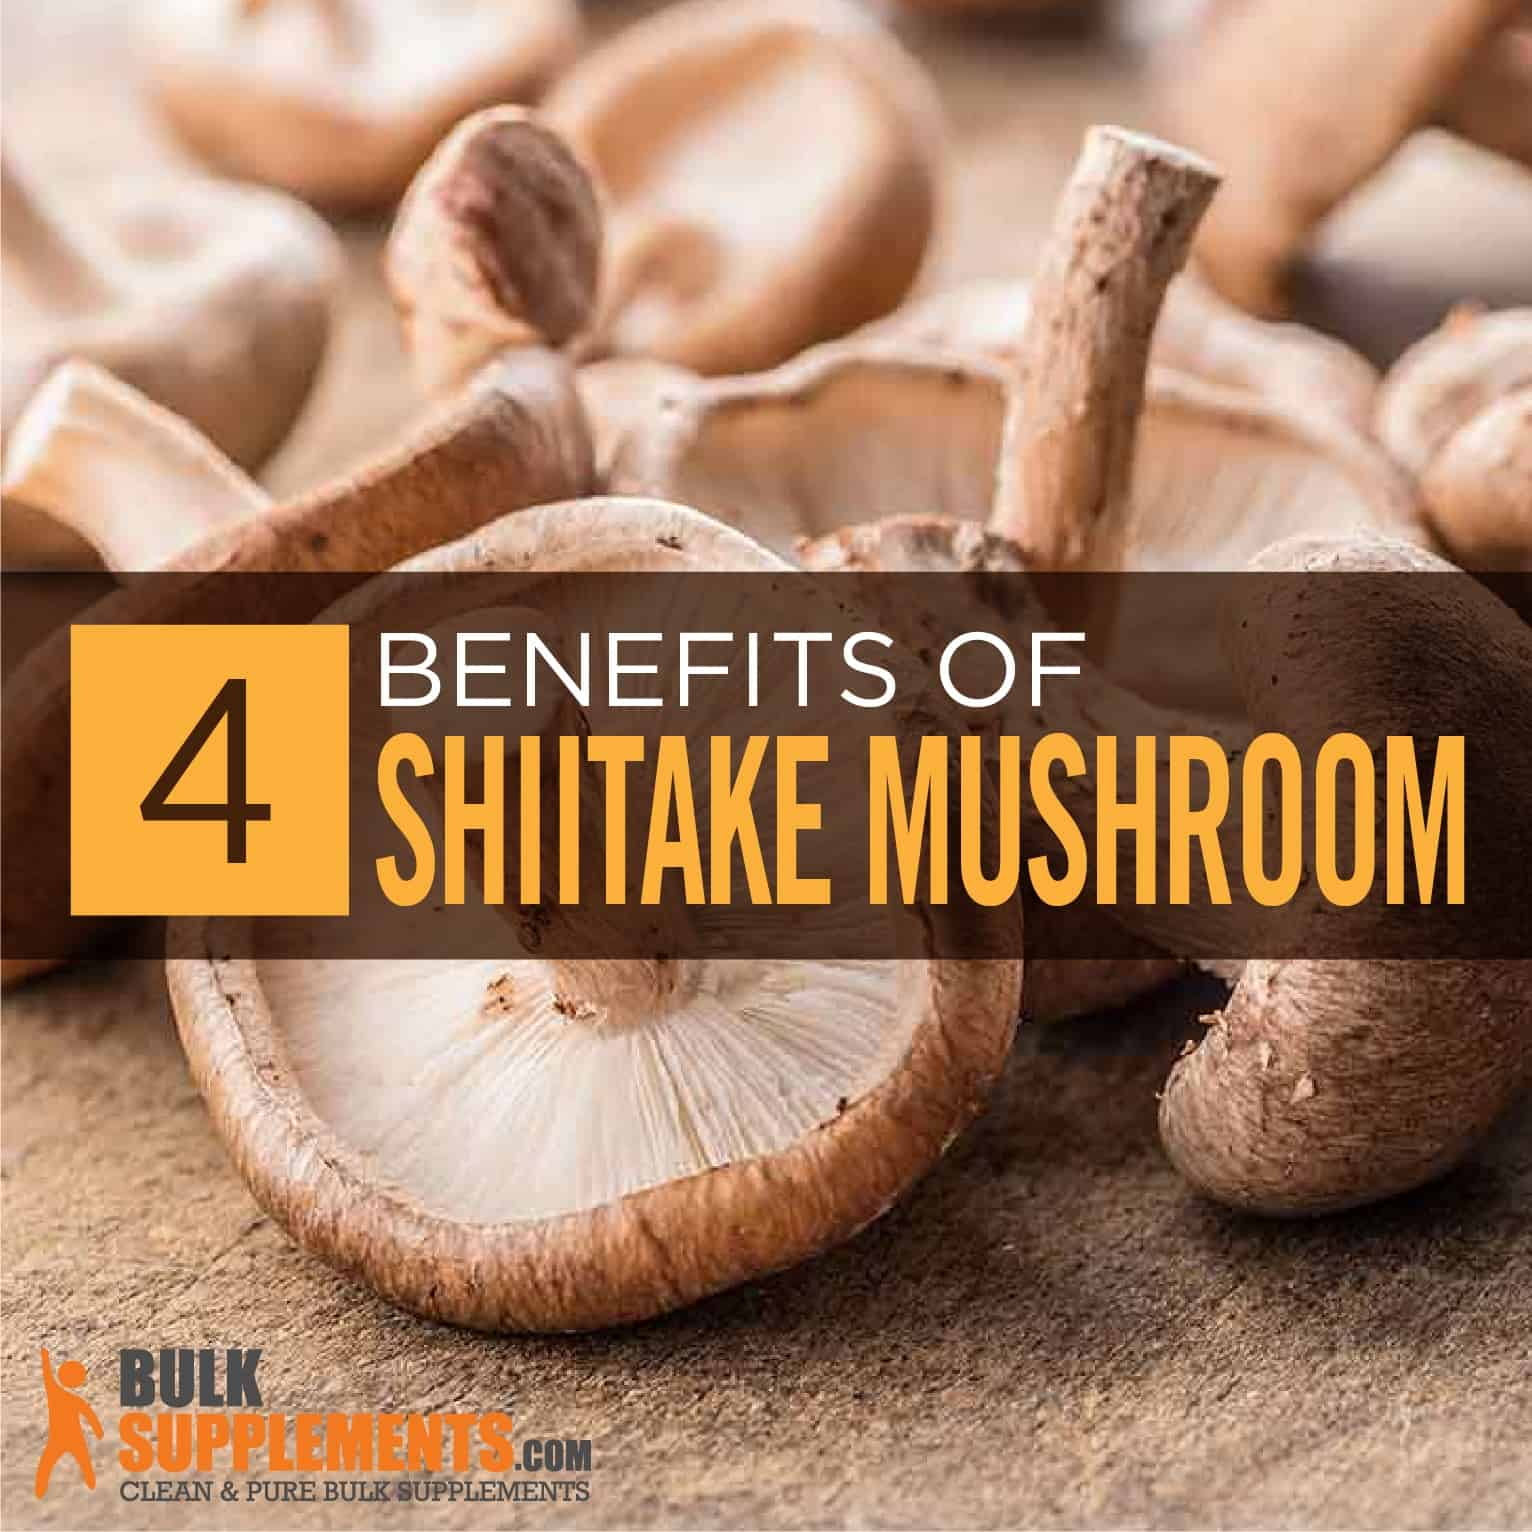 Shiitake Mushroom Extract: Benefits, Side Effects & Dosage